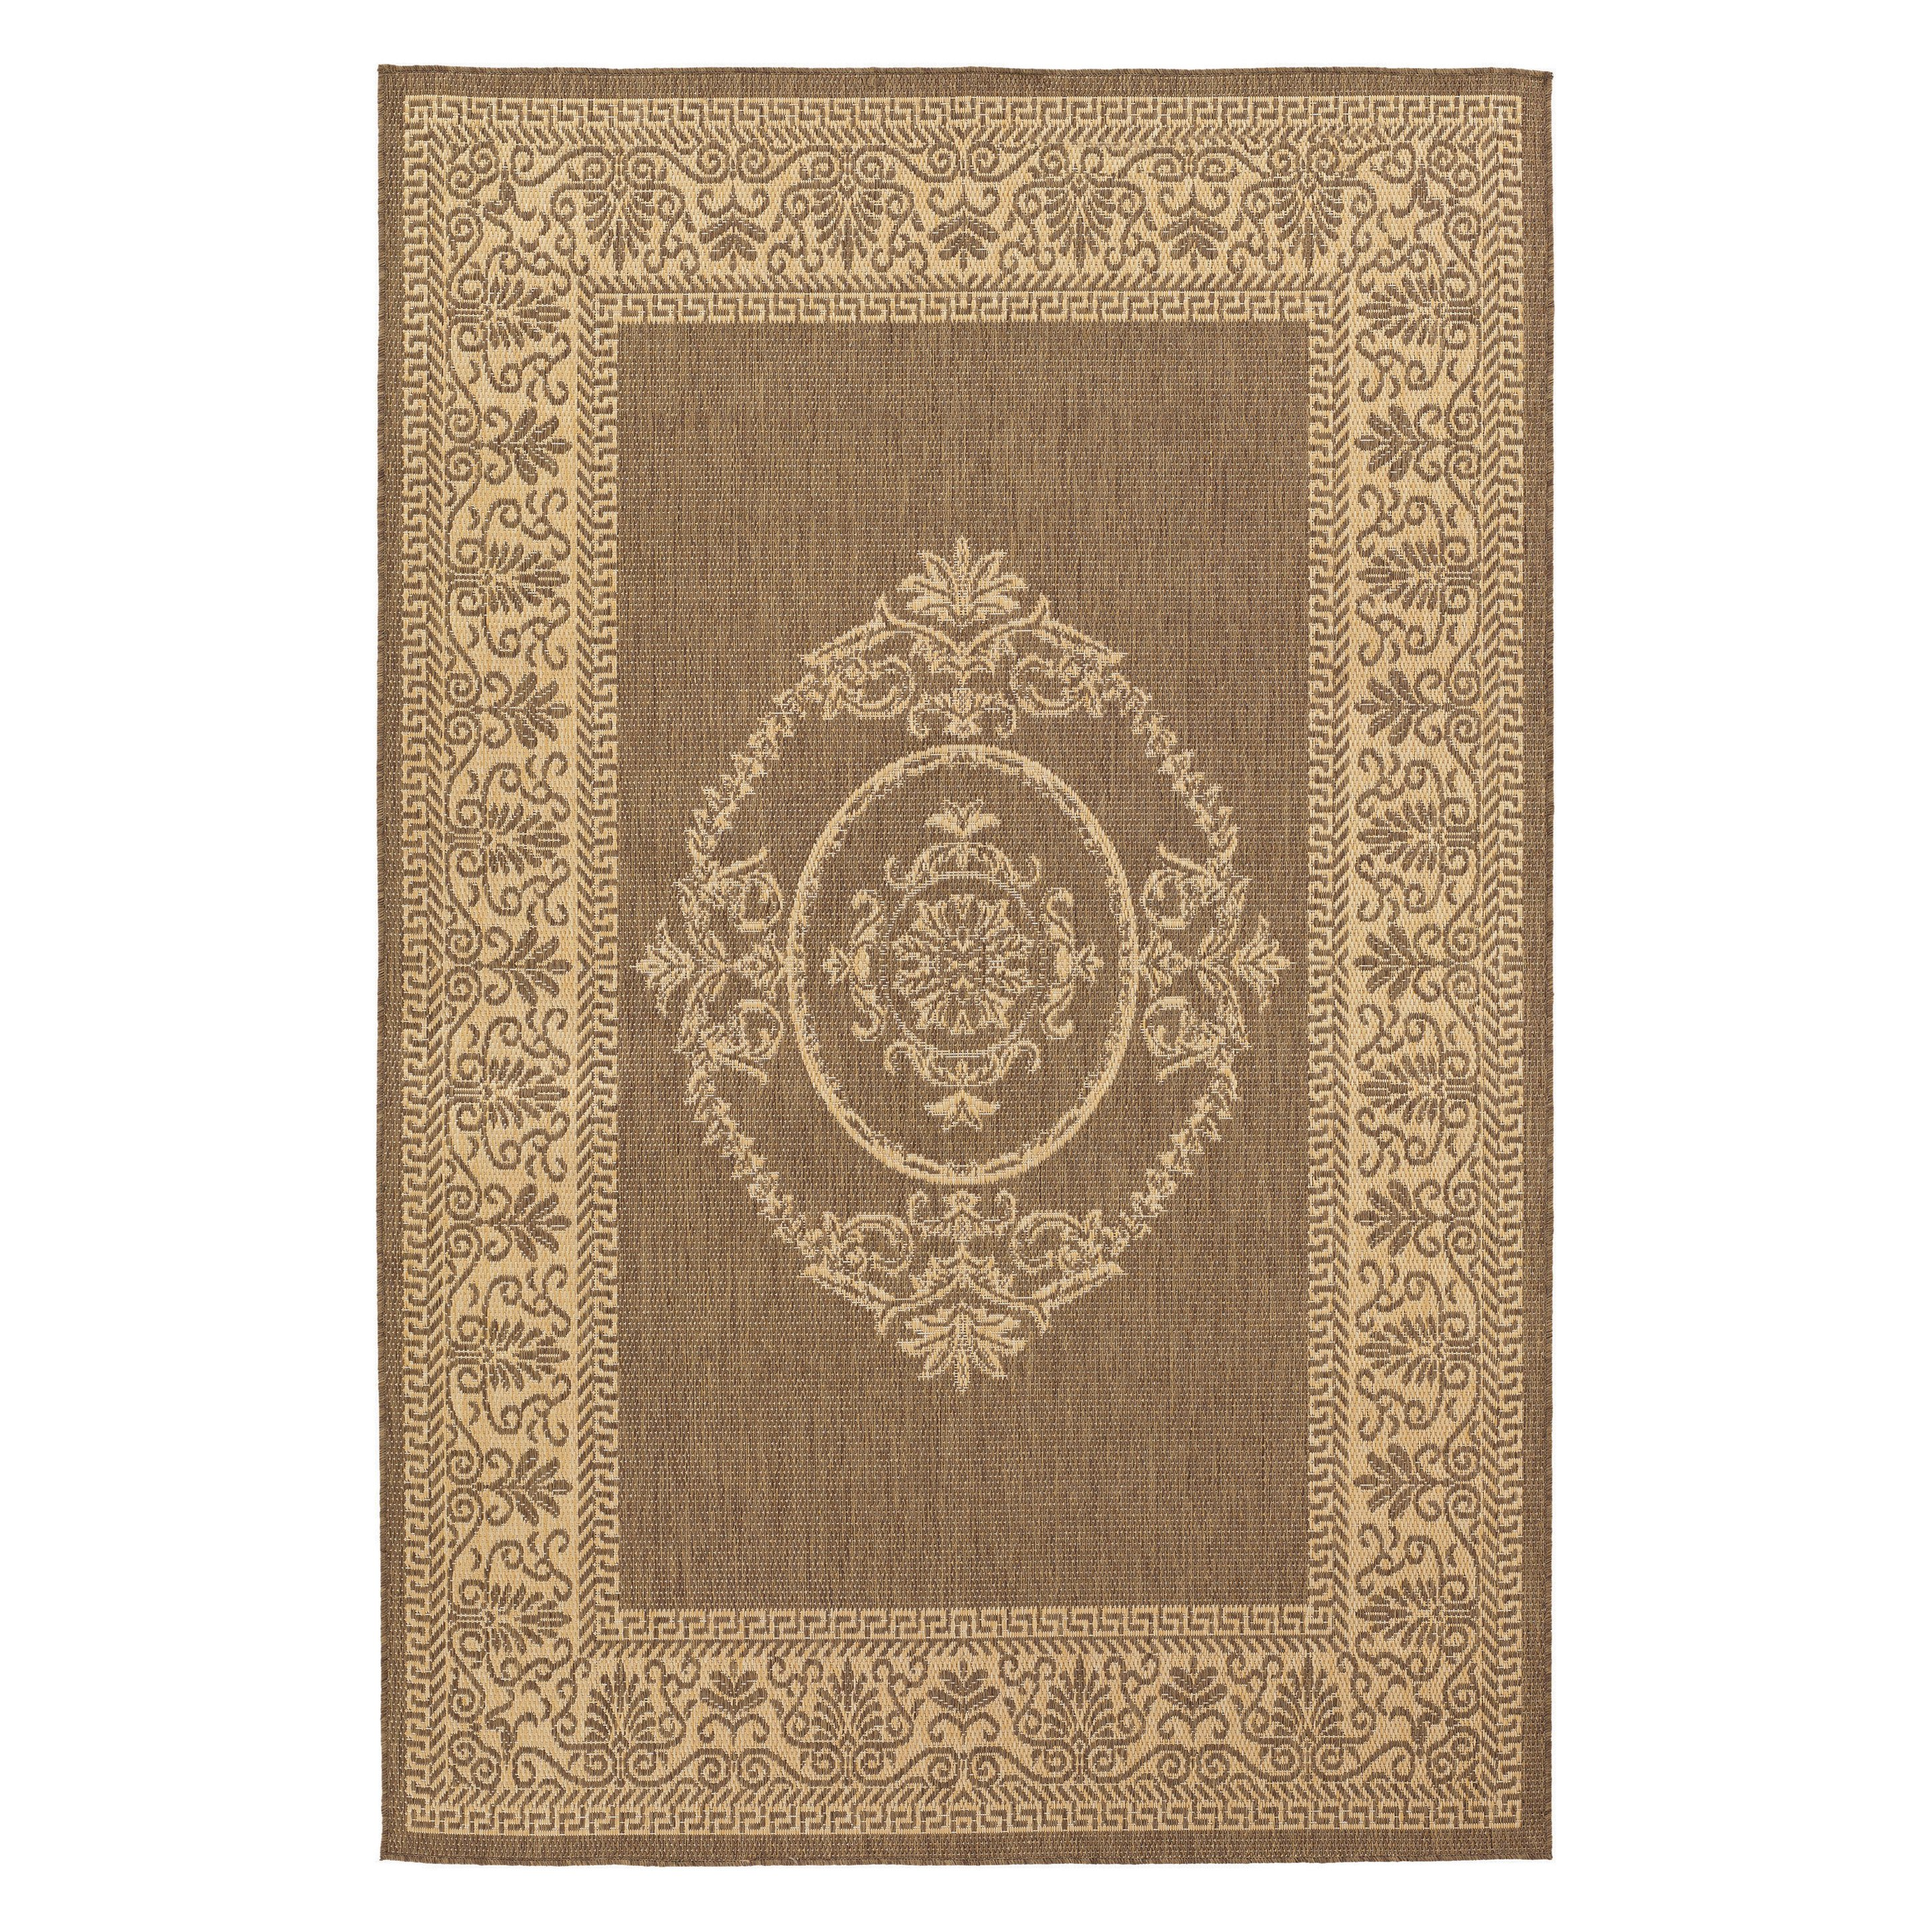 Couristan Recife Antique Medallion Natural/Cocoa Area Rug